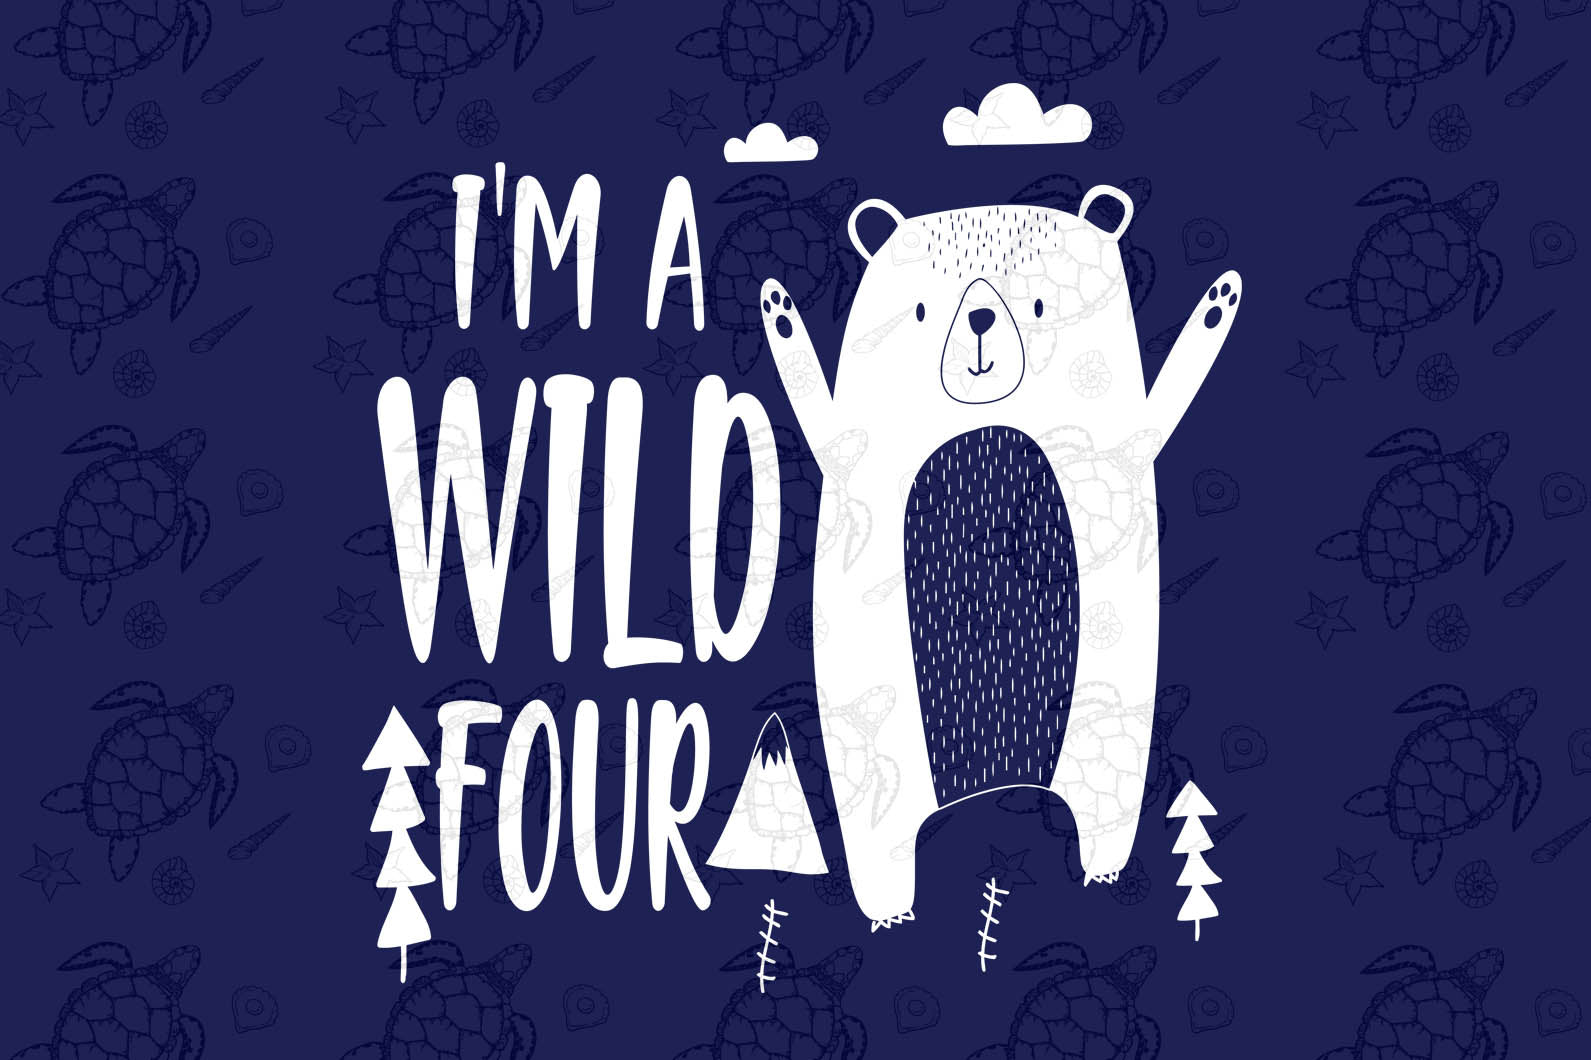 I'm a wild four, born in 2016, 2015 svg, 4th birthday party, 4th birthday gift, birthday shirt, birthday anniversary, teddy bear, bear svg, bear birthday, gift for kids, gift from parents, digital file, vinyl for cricut,